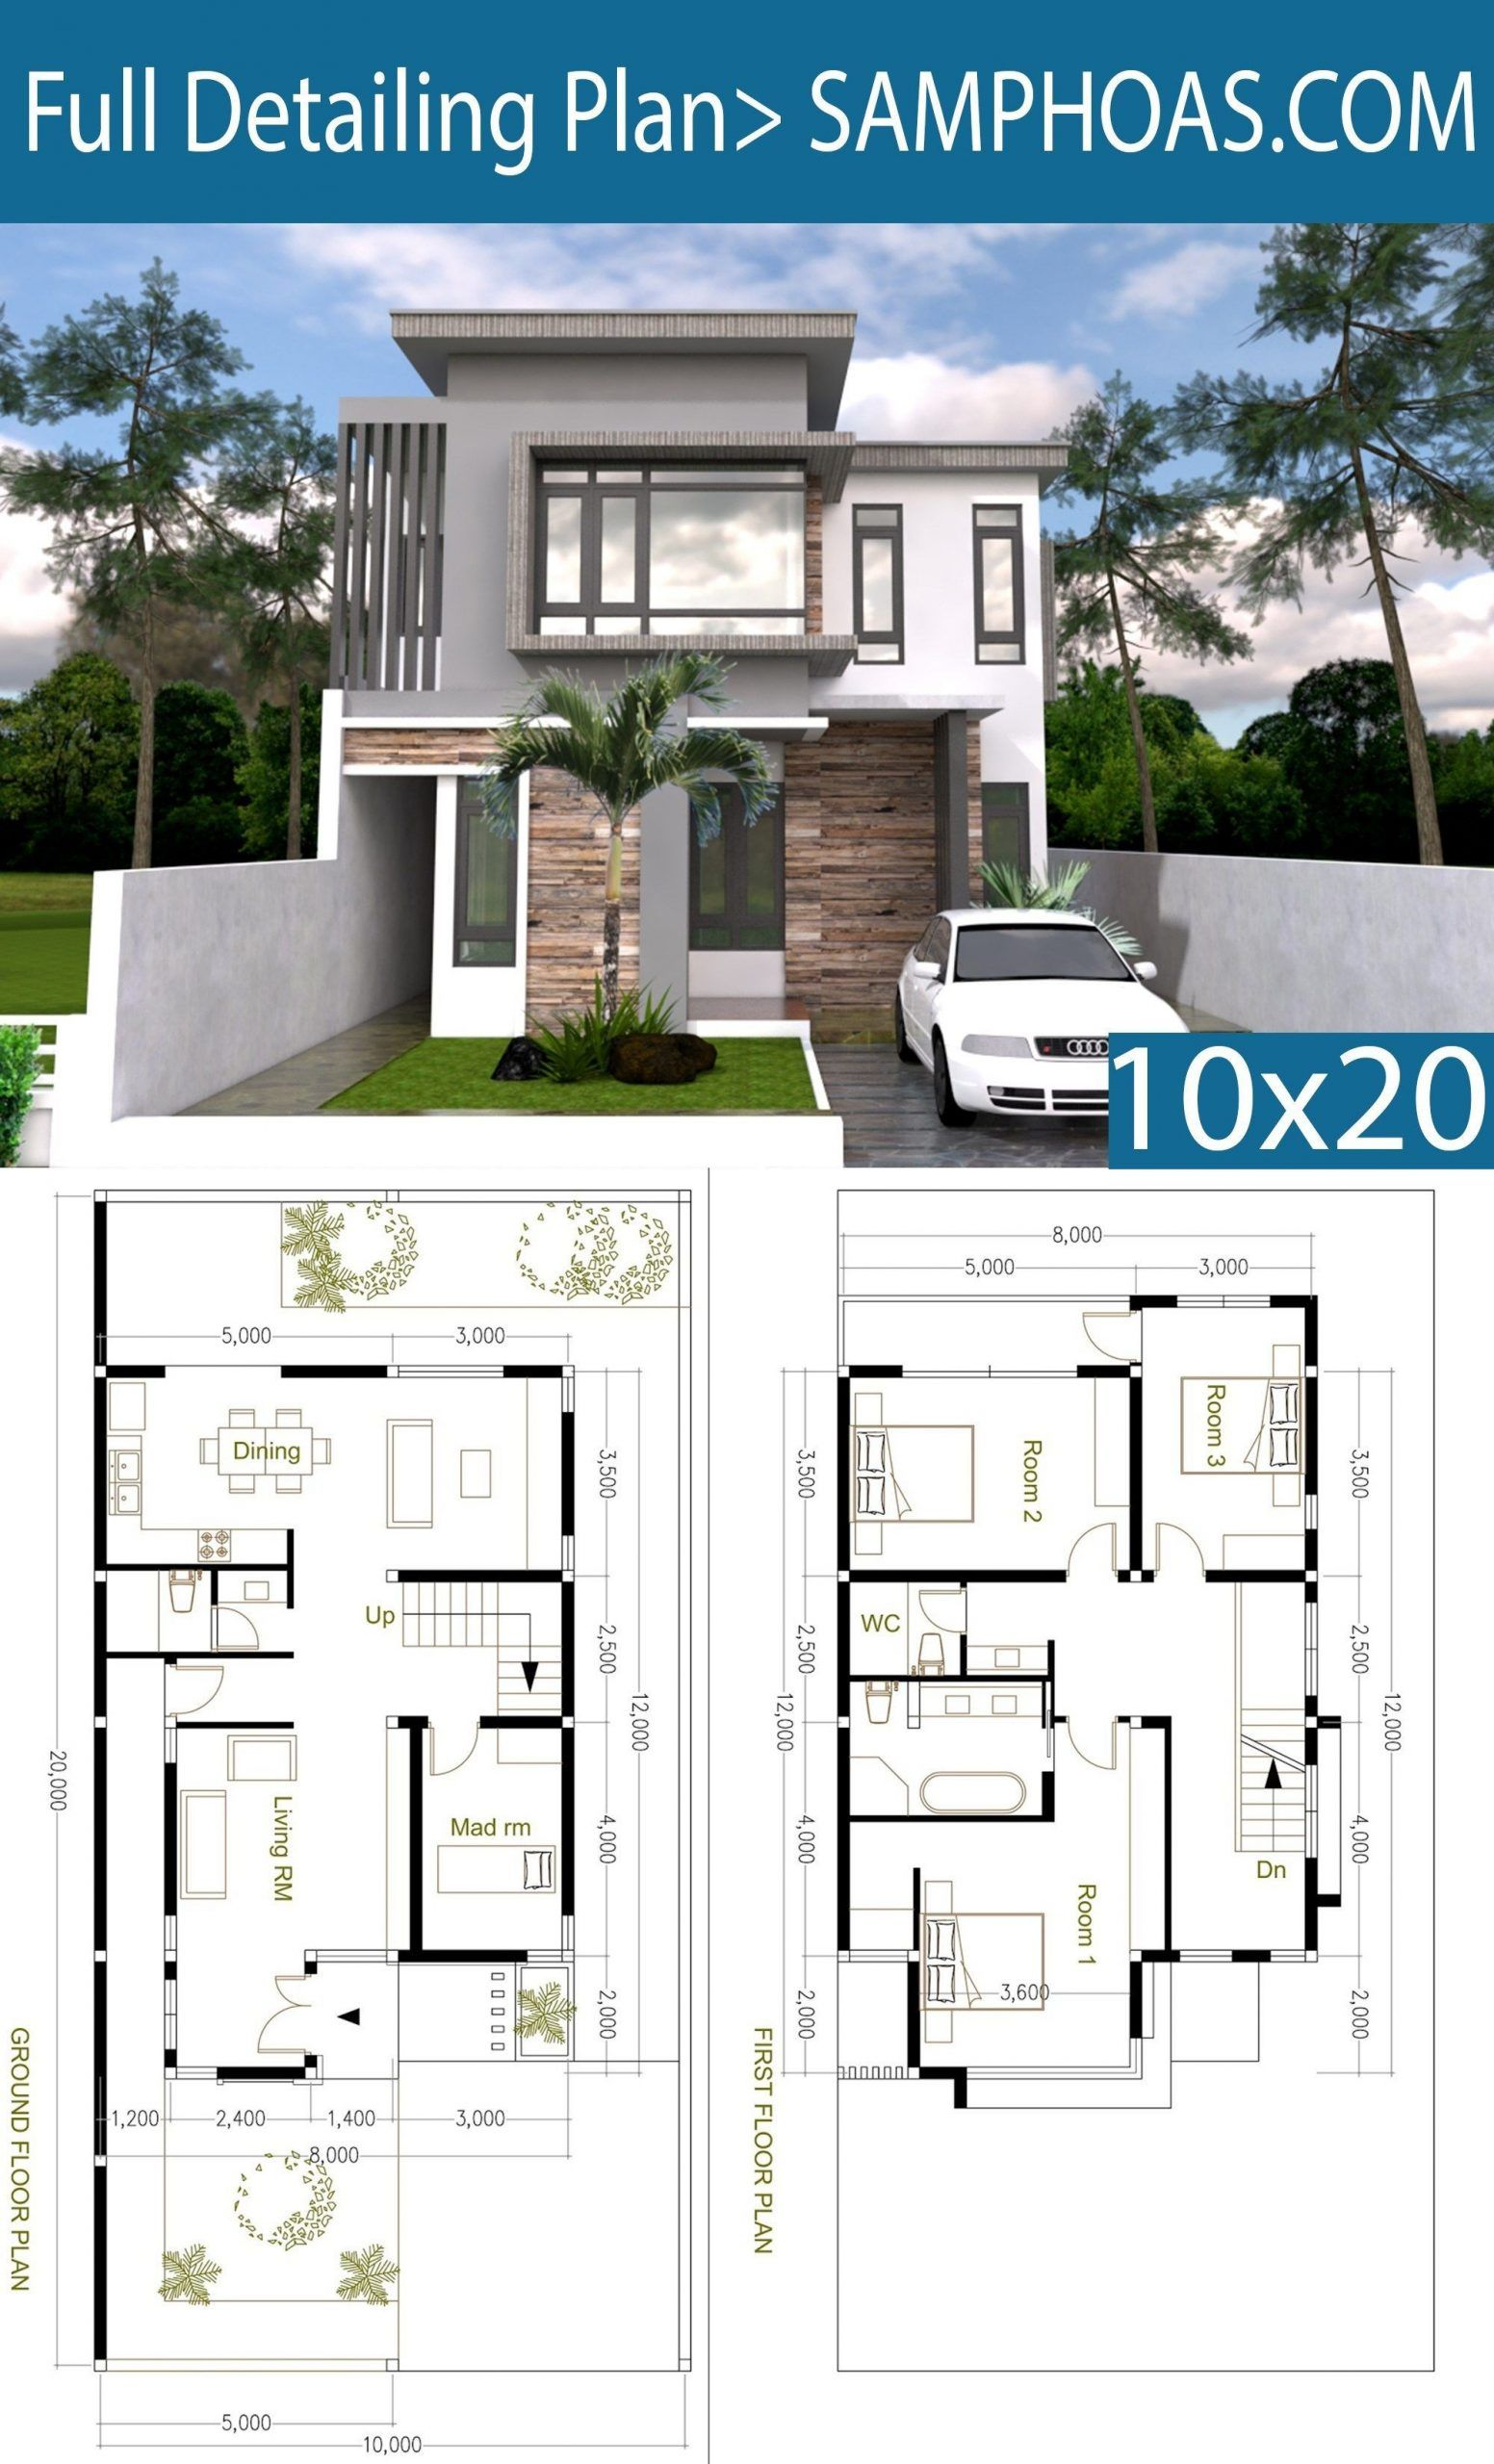 Www Home Plan Design Com Www Home Plan Design Com 2021 Sketchup Modeling Home Plan 10x1 House Construction Plan Home Building Design Modern House Floor Plans